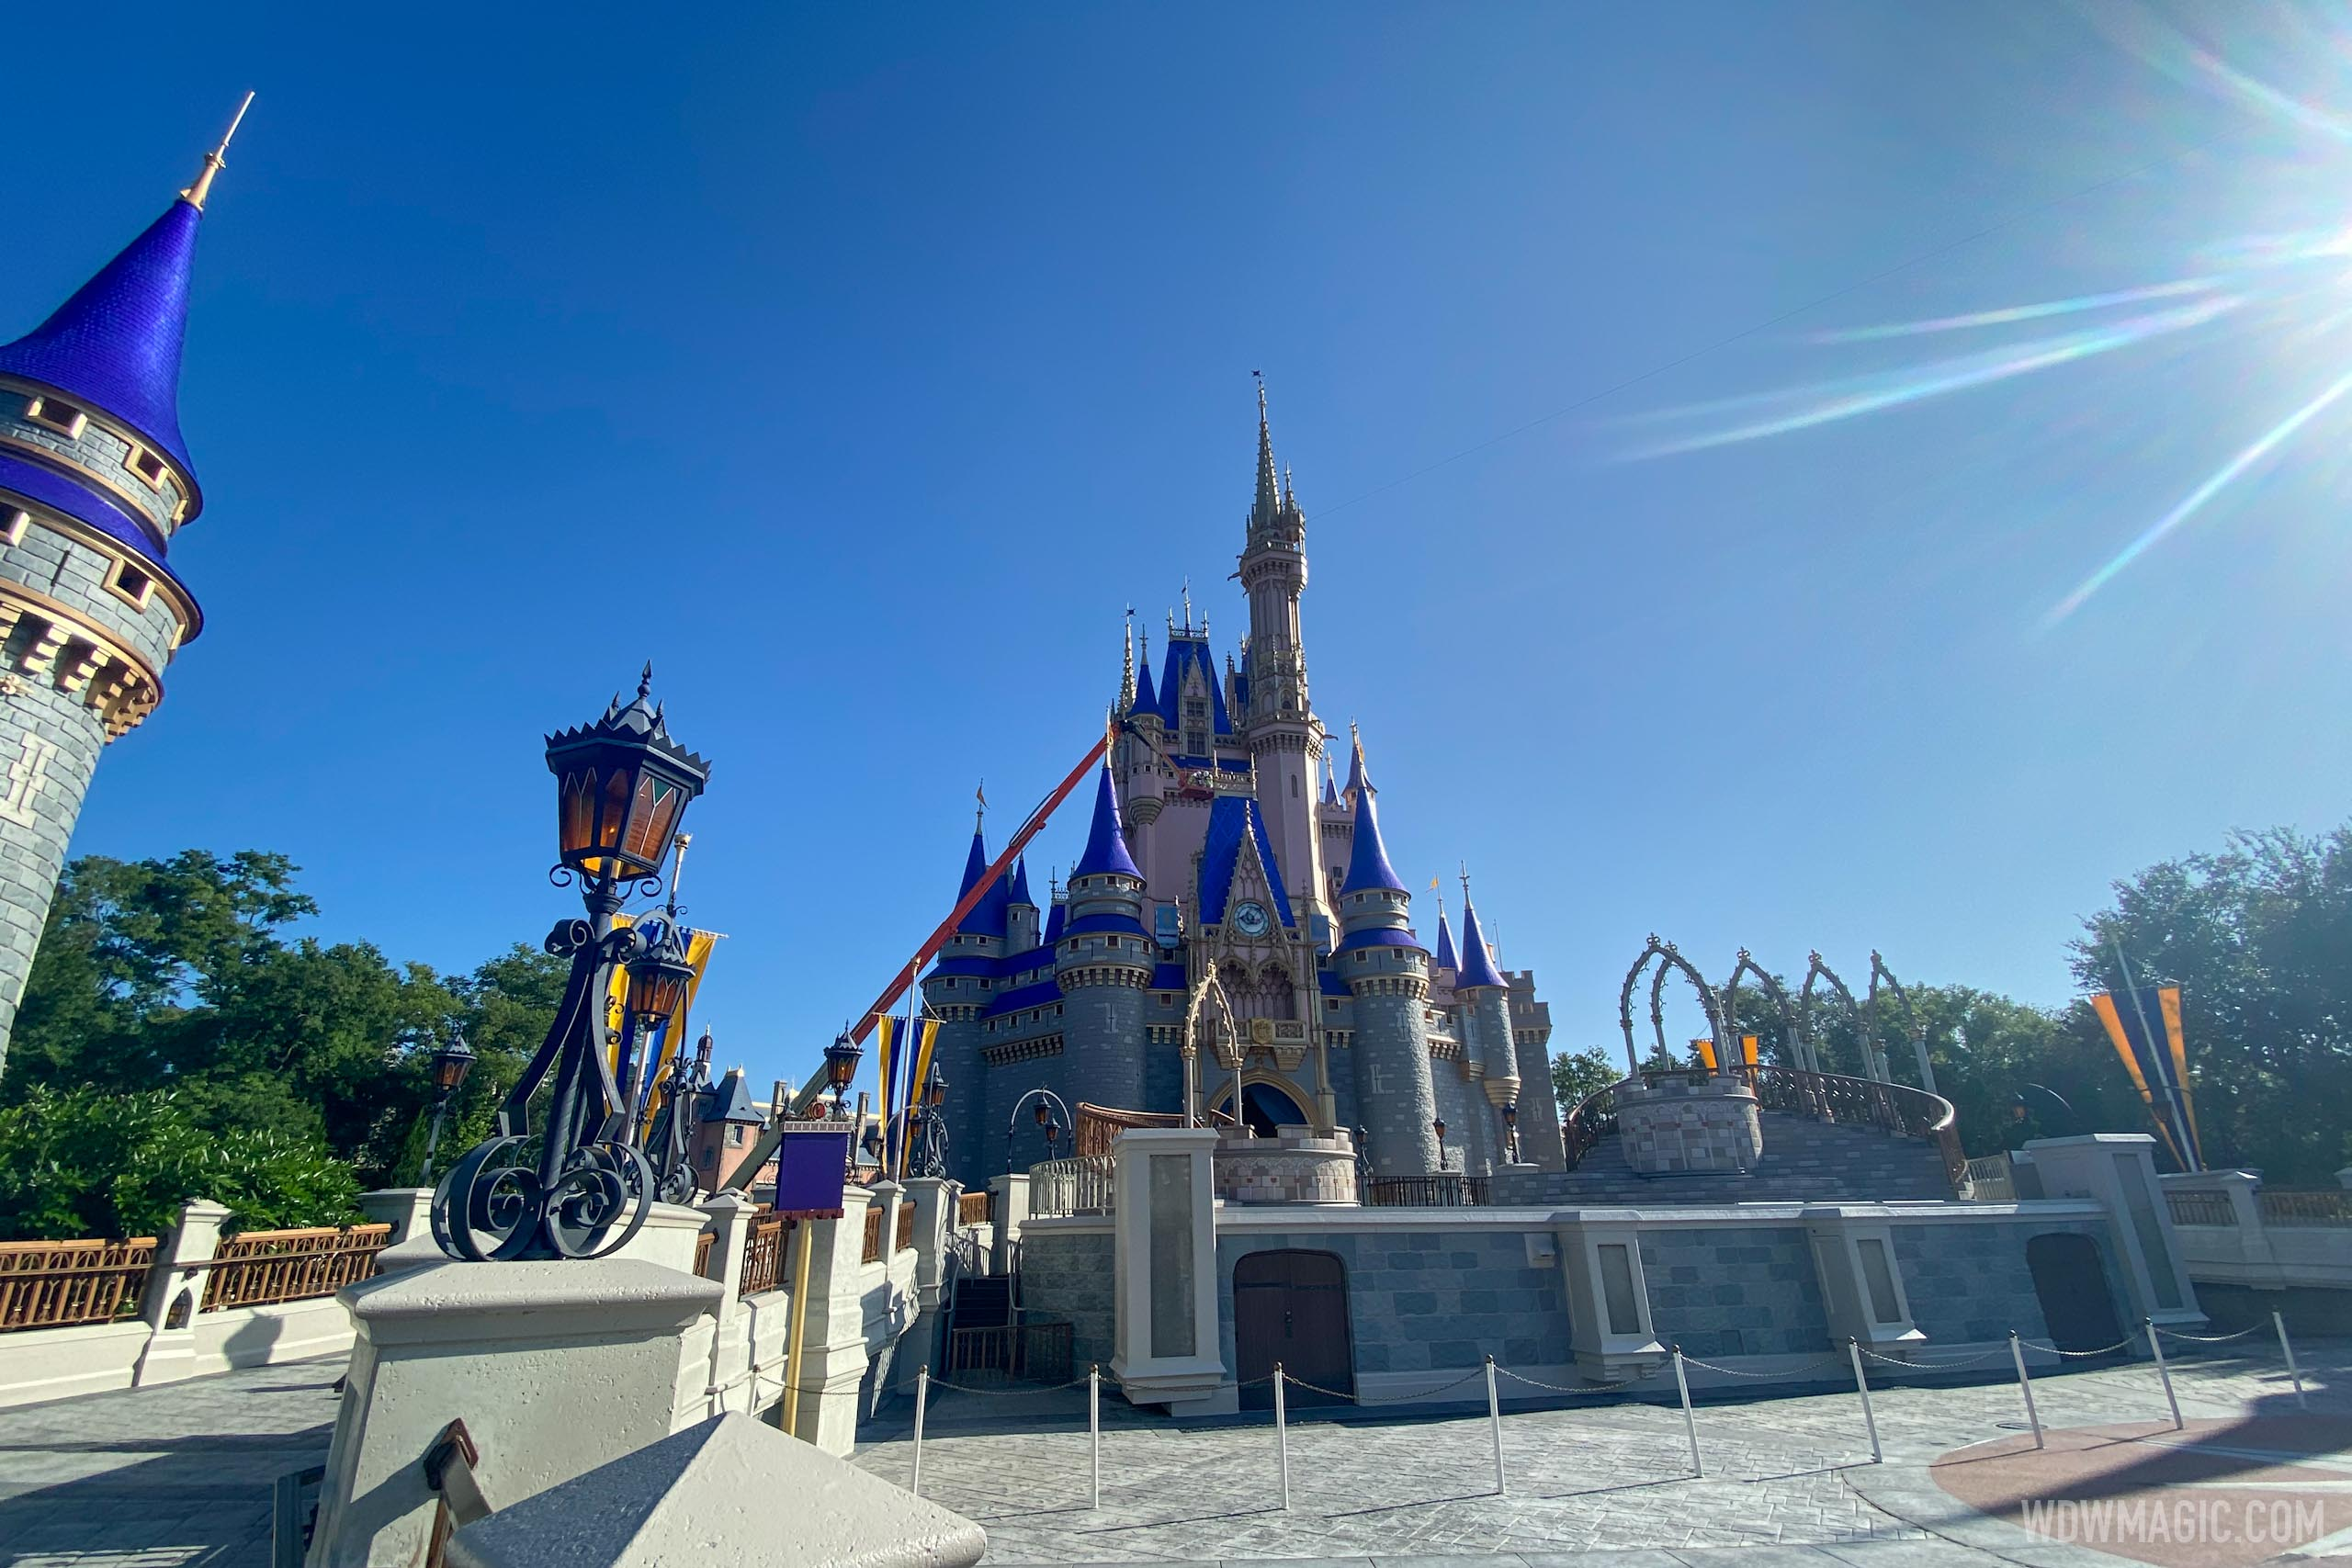 Cinderella Castle repainting - July 7 2020